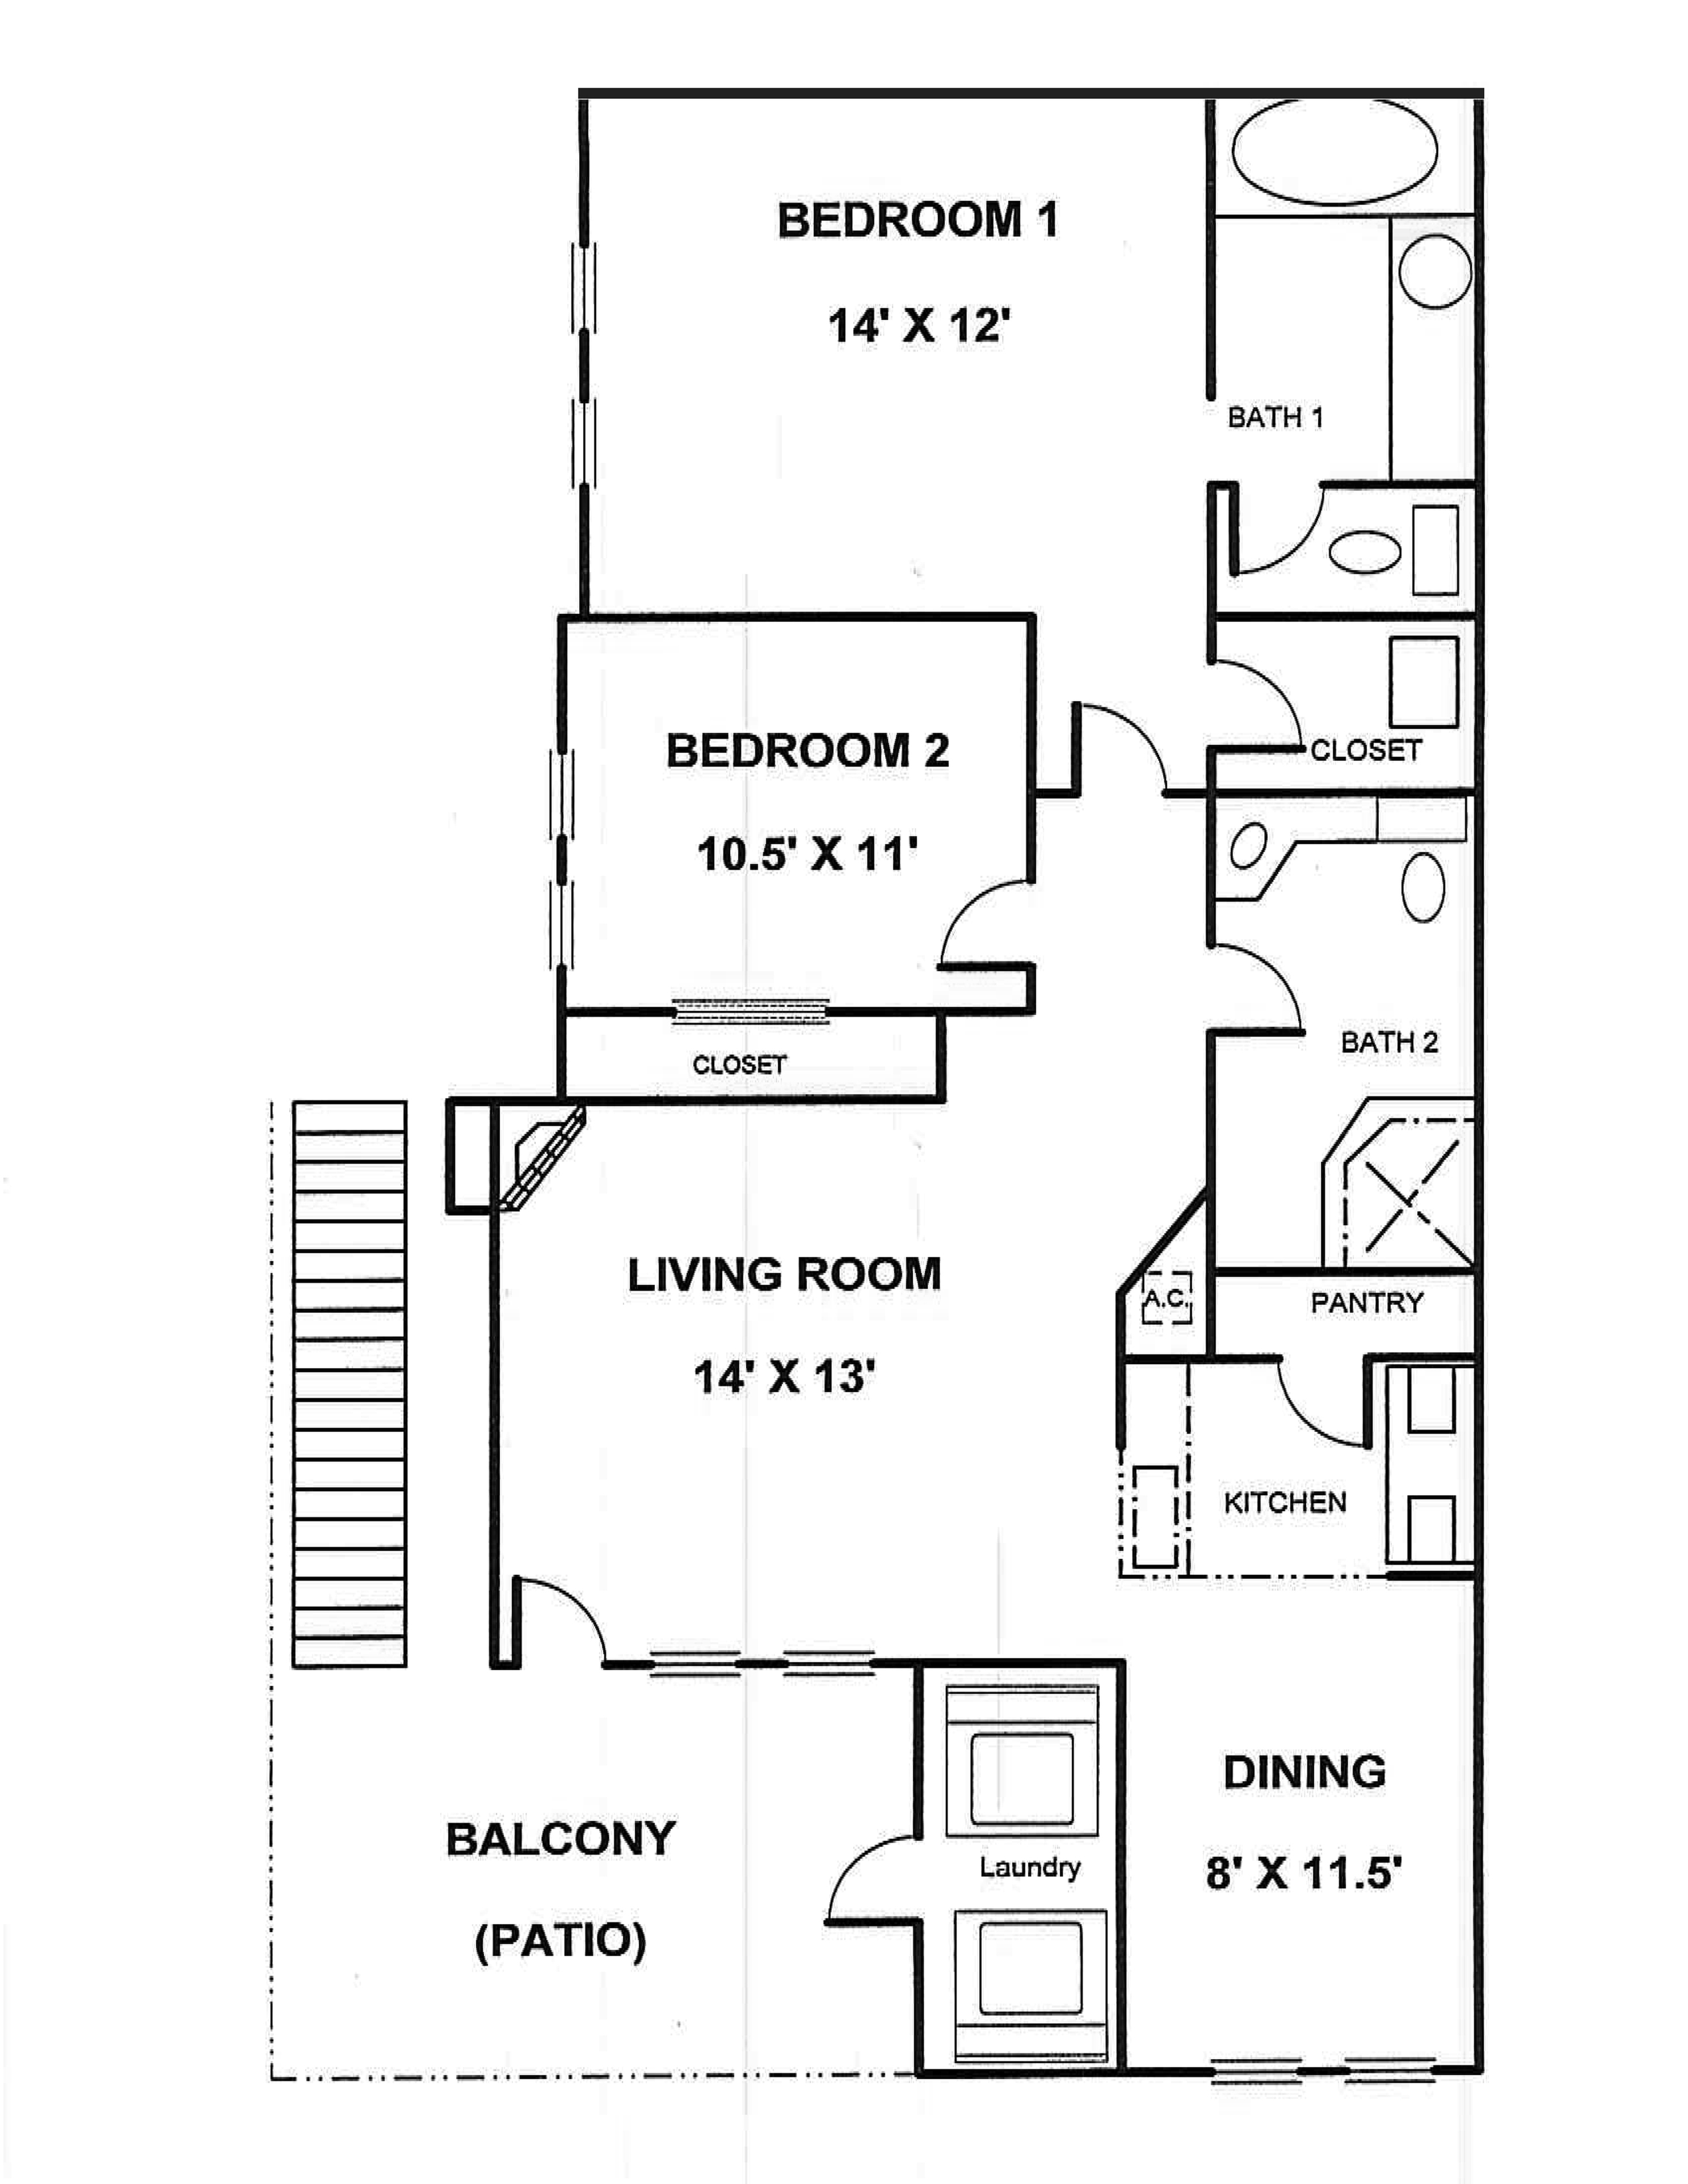 Two Bedrooms (1000 sq. ft.)